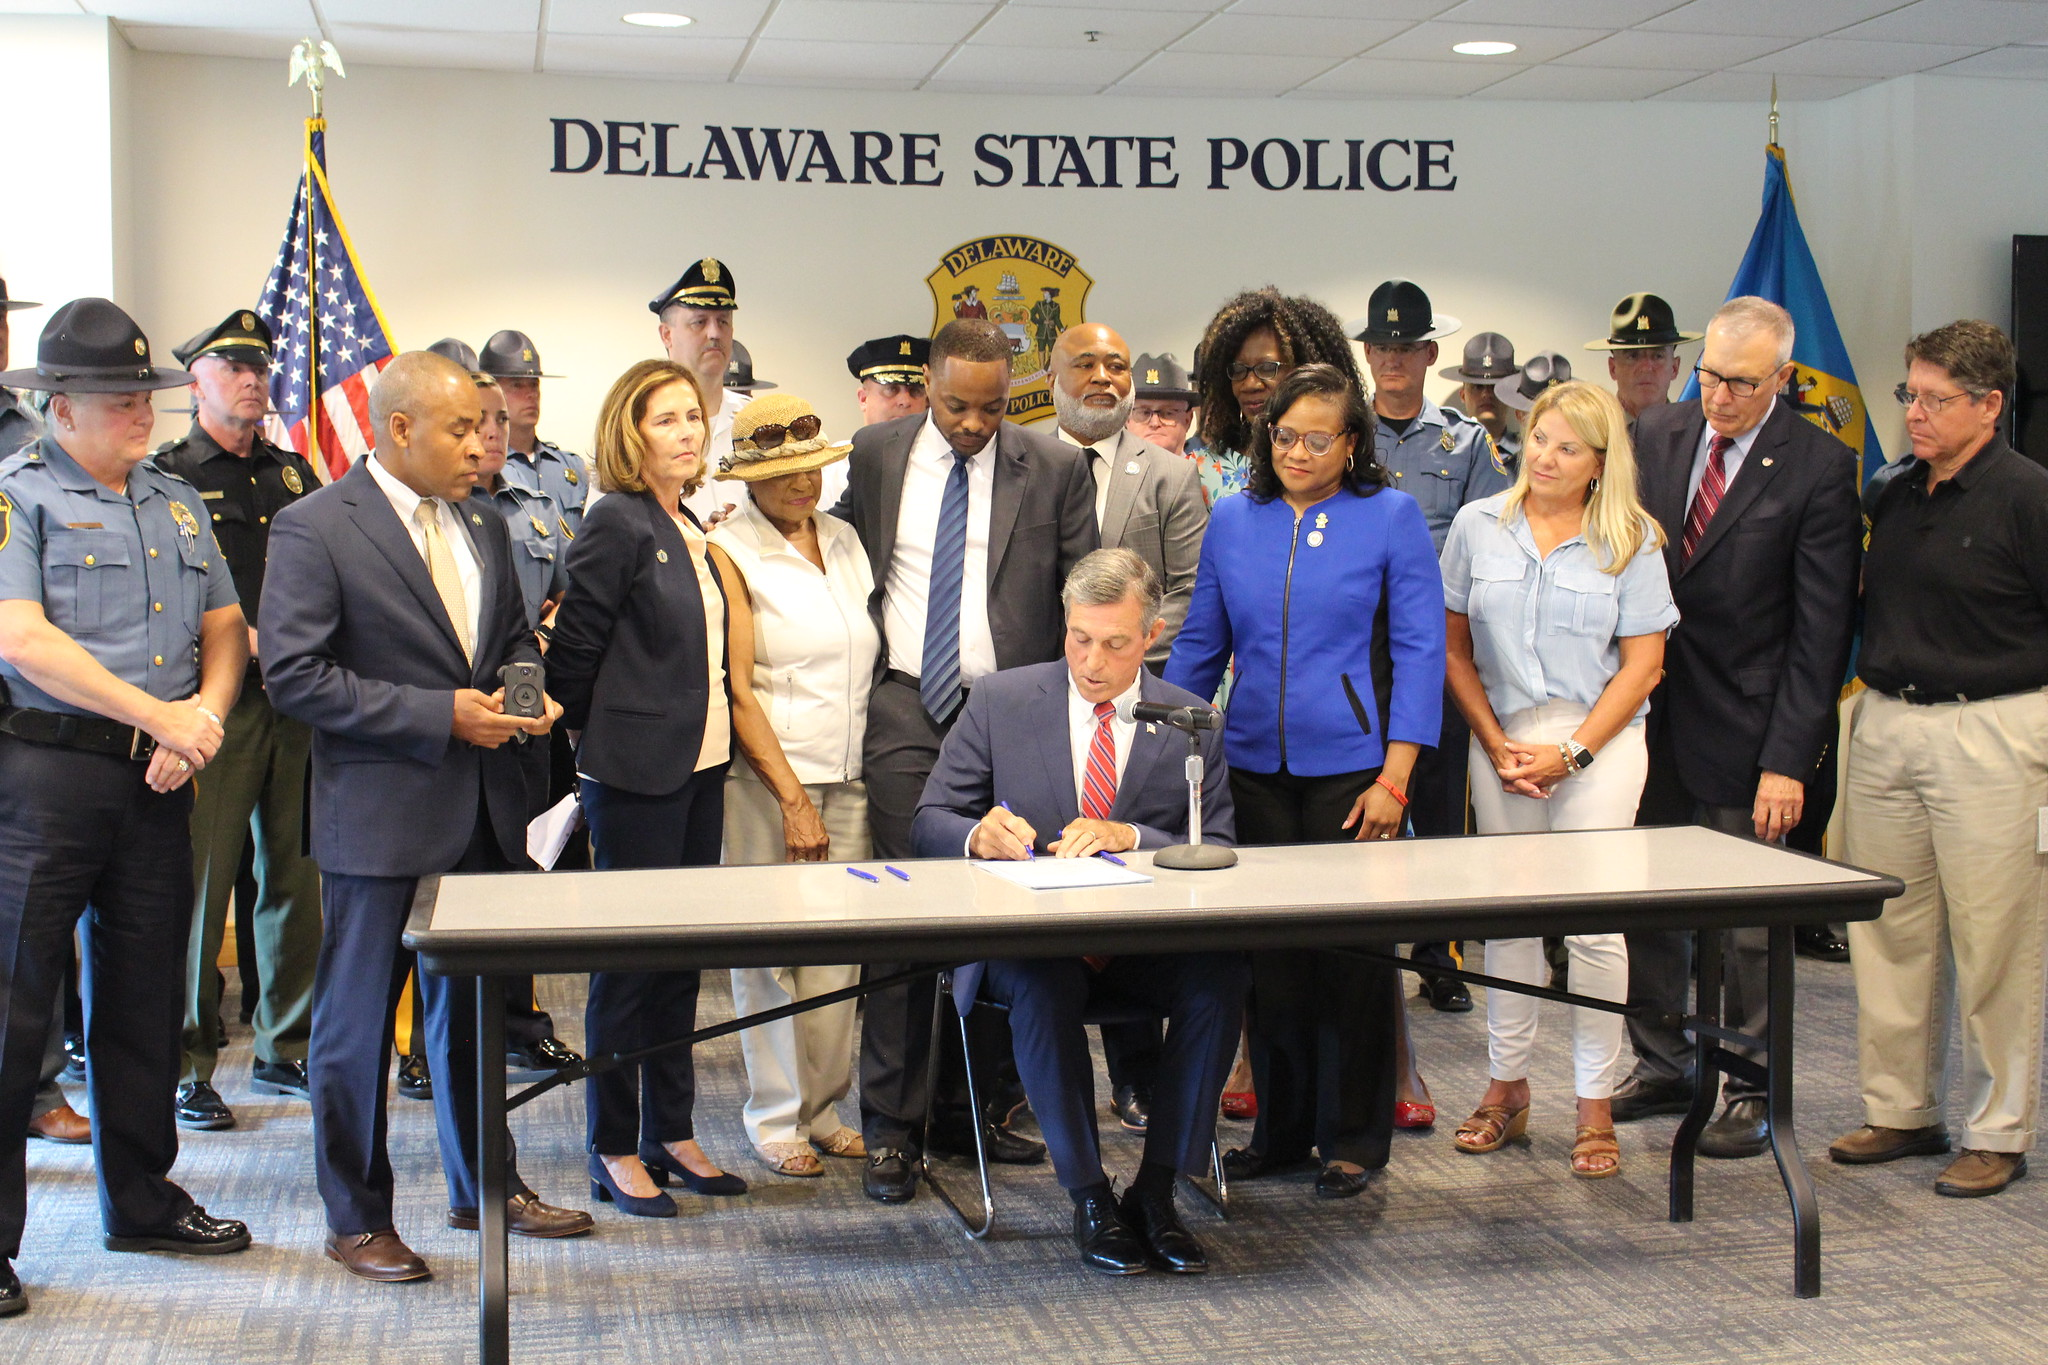 Governor Carney signed House Bill 195 while seated at a desk and surrounded by legislators, law enforcement and advocates